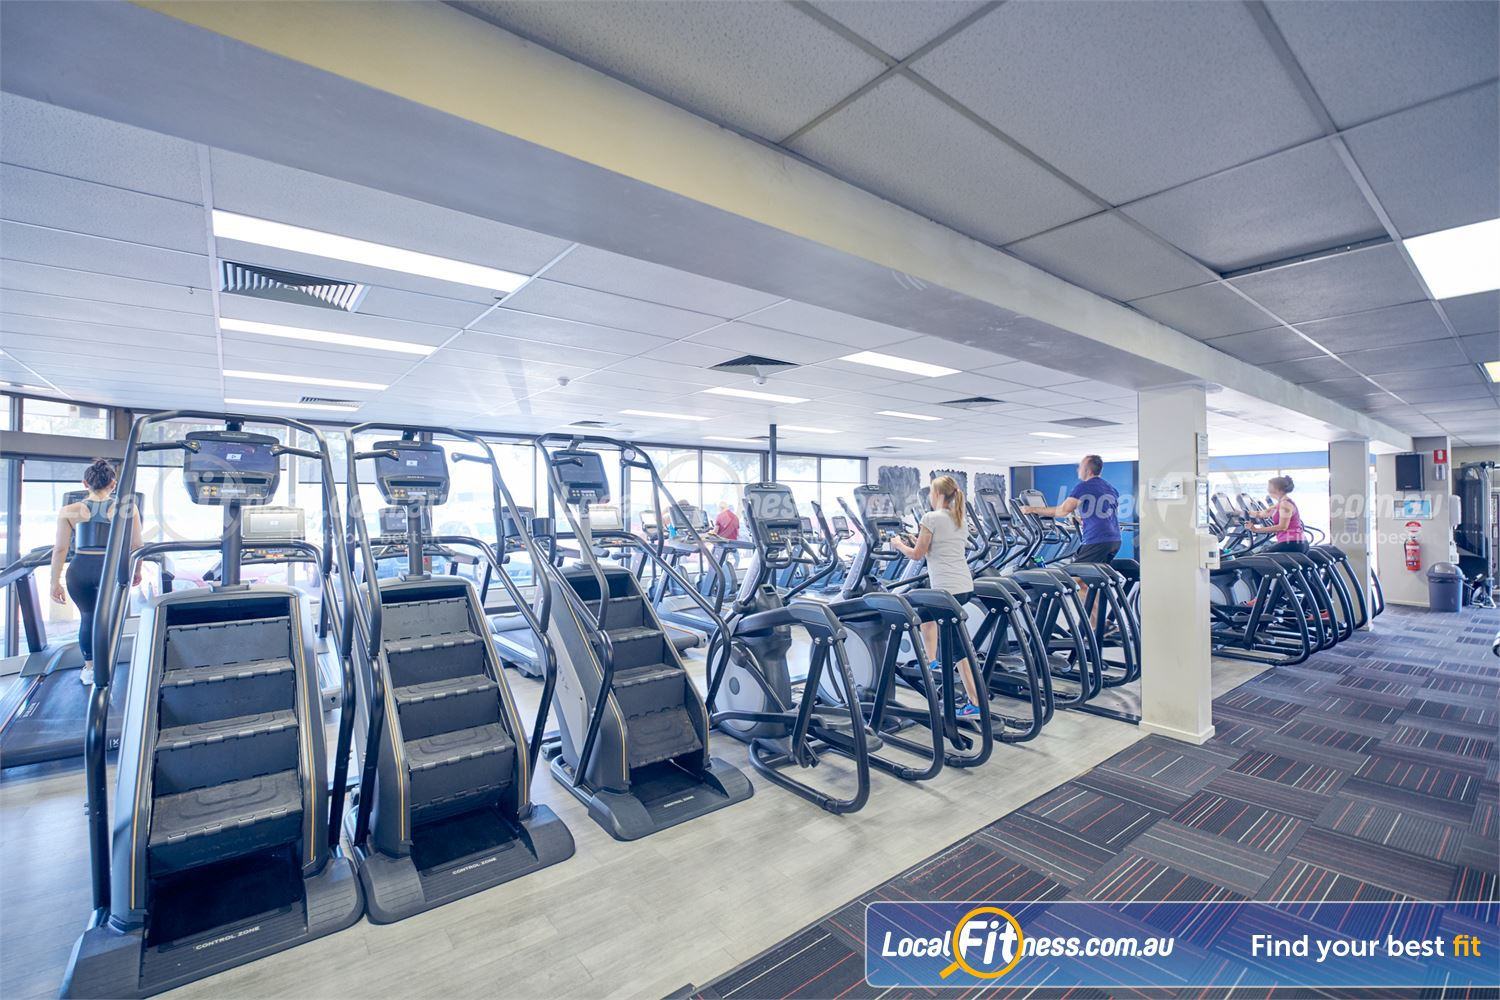 Goodlife Health Clubs Dingley Village Treadmills, cross-trainers, climbmills and more.